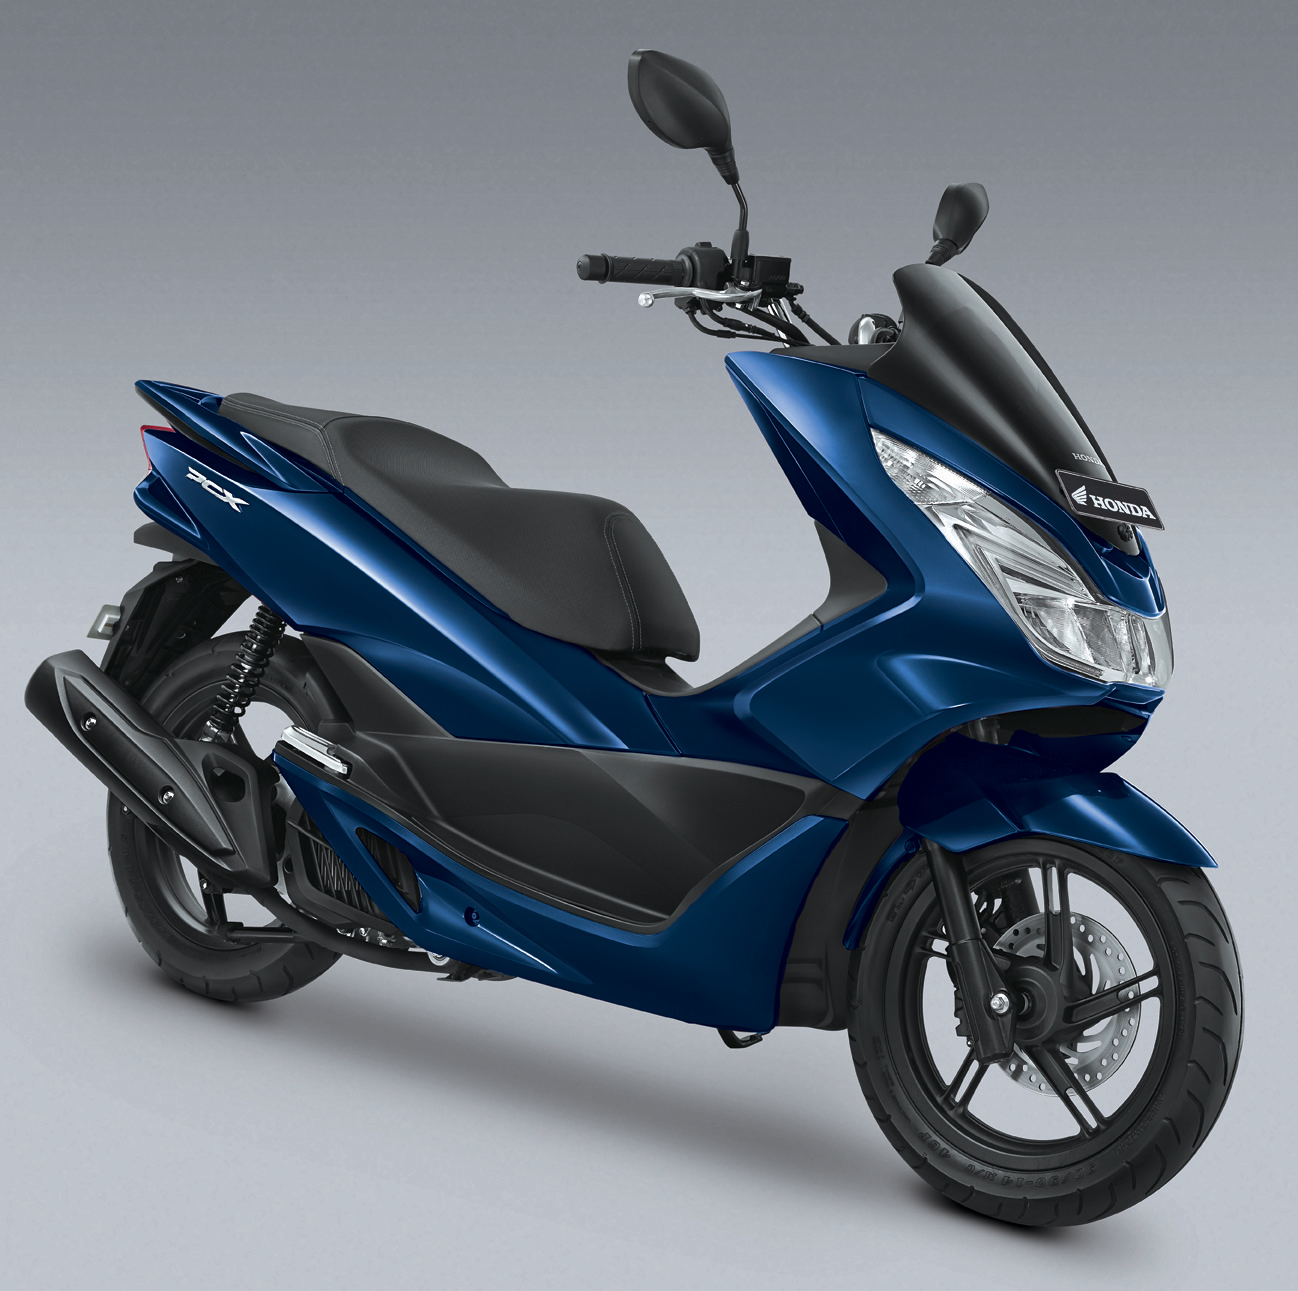 2015 Honda PCX 150 A/T - Second Hand Cars in Chiang Mai